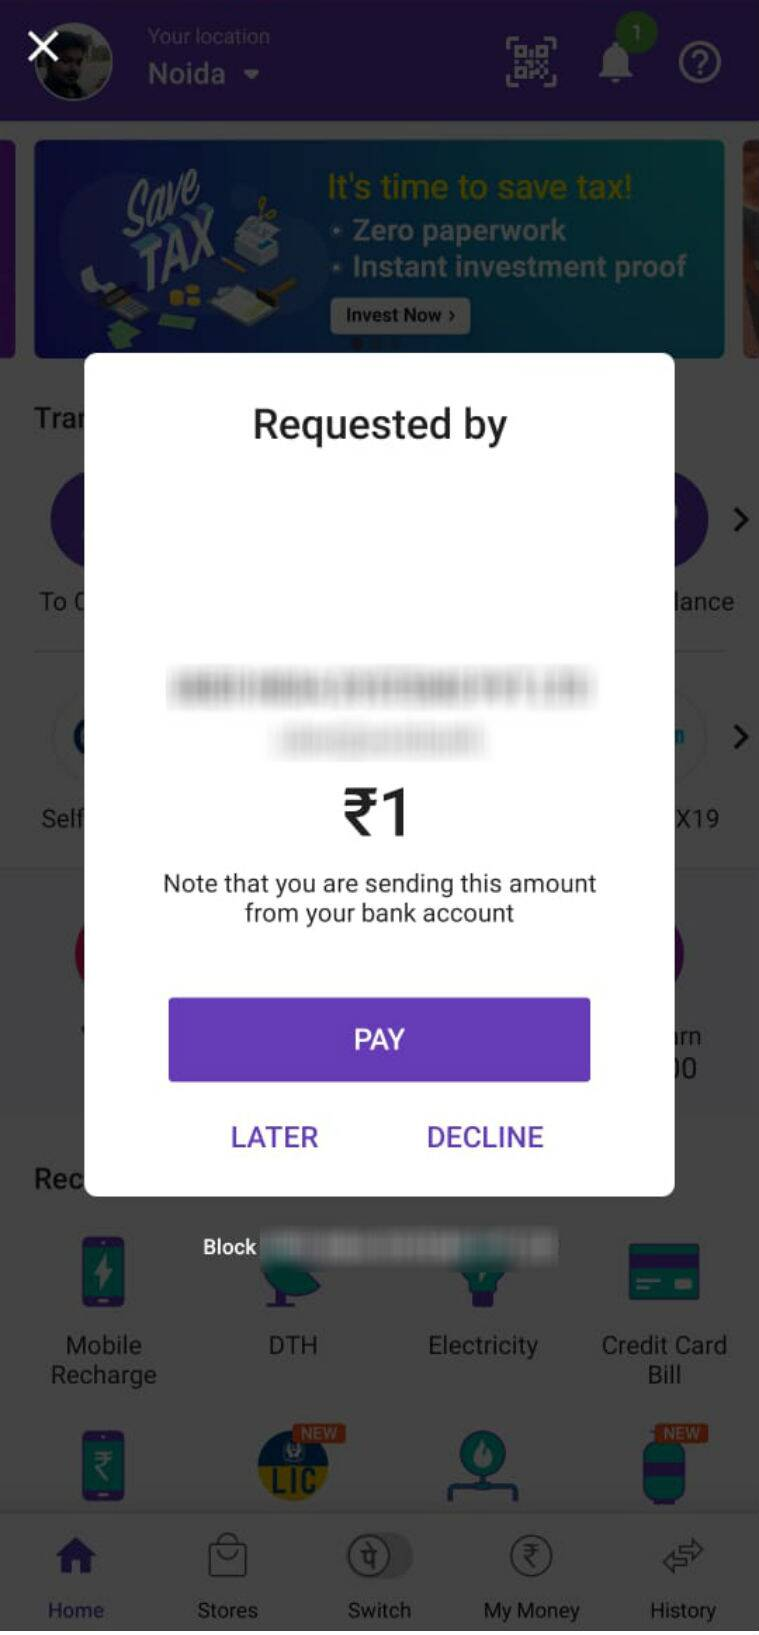 upi fraud, phonepe fraud, google pay fraud, upi fraud olx, olx, phonepe cashback fraud, upi scam